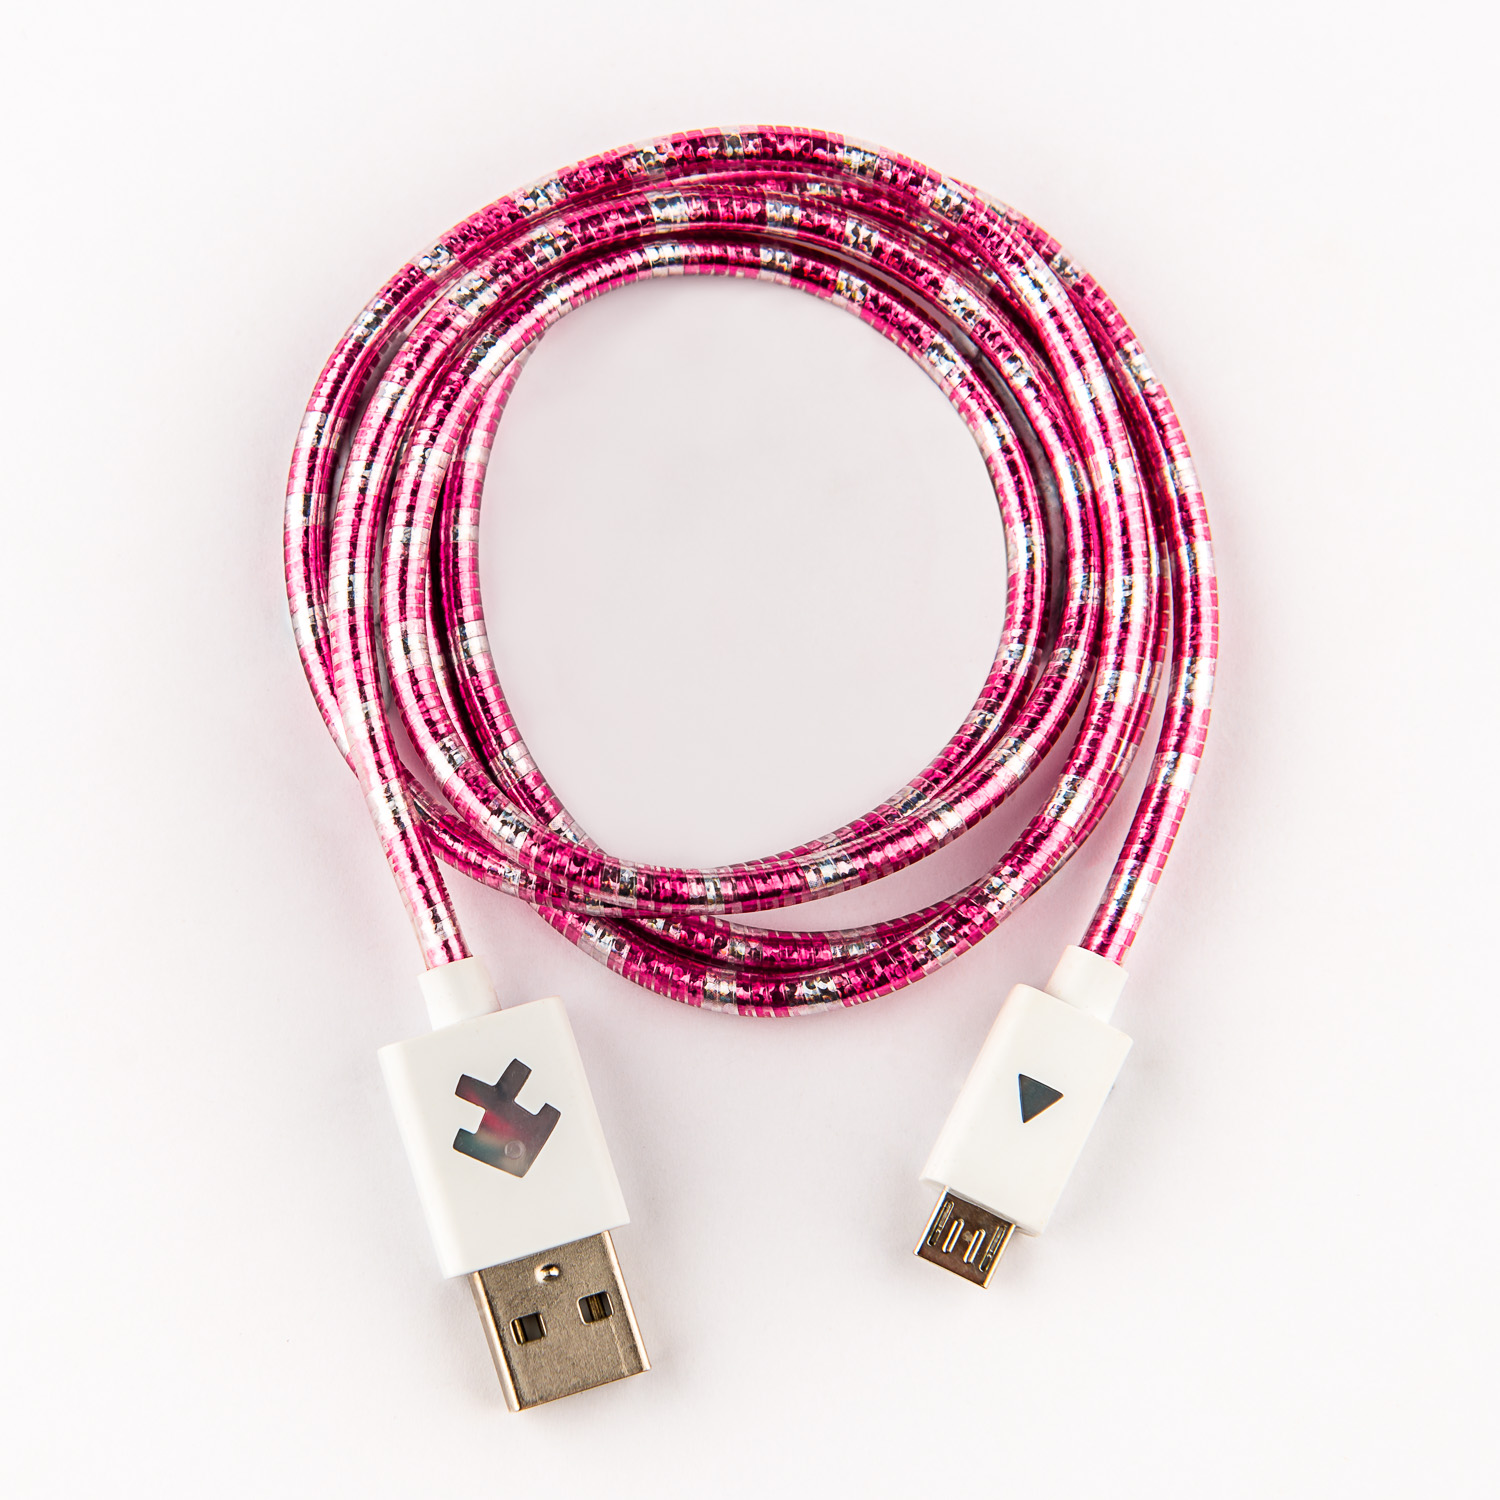 Xcyte Ultra fast Android USB recharge cable (PINK/SILVER) – 1 metre